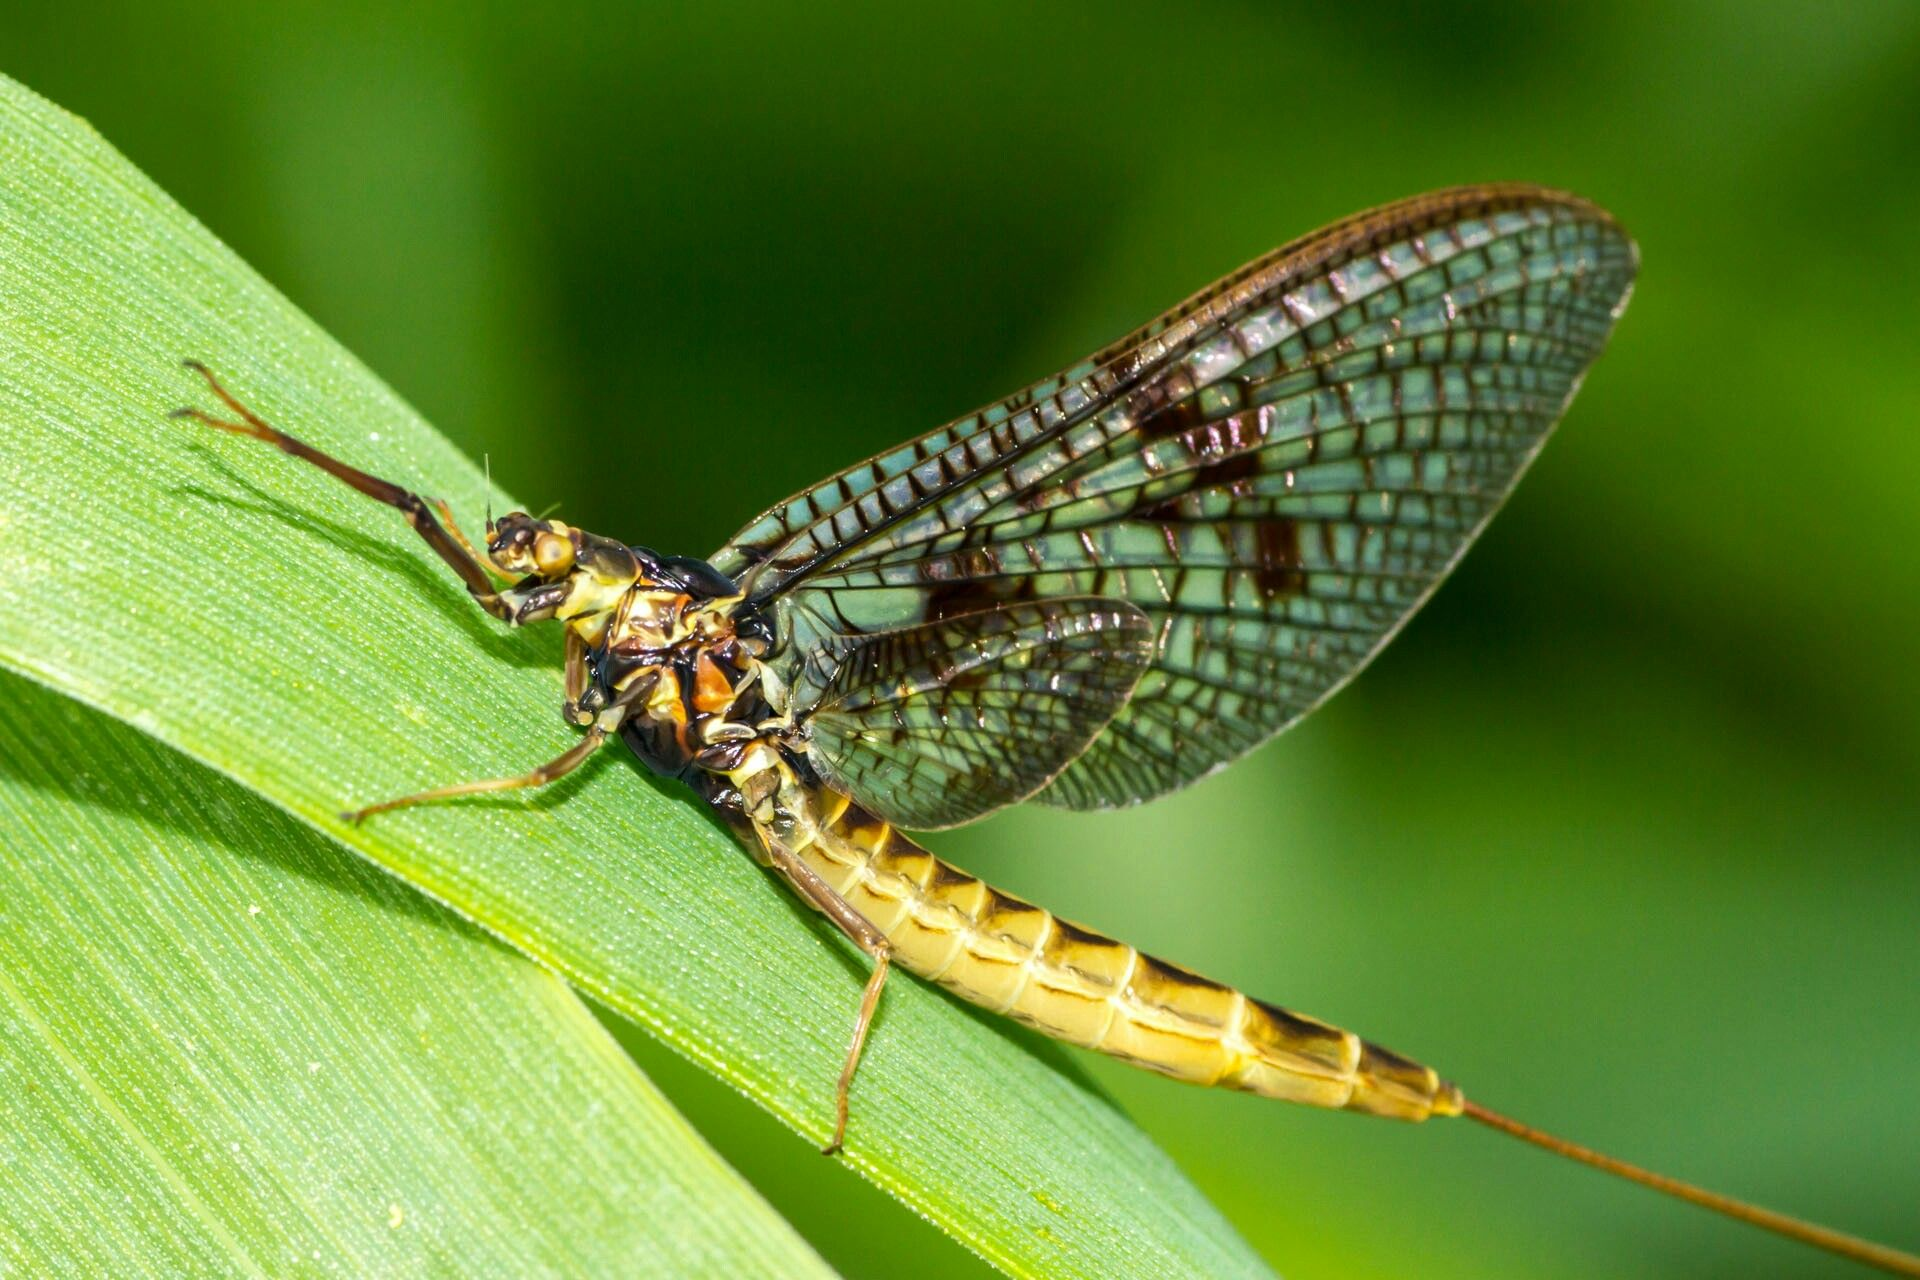 Mayfly, an insect that belongs to order Ephemeroptera and